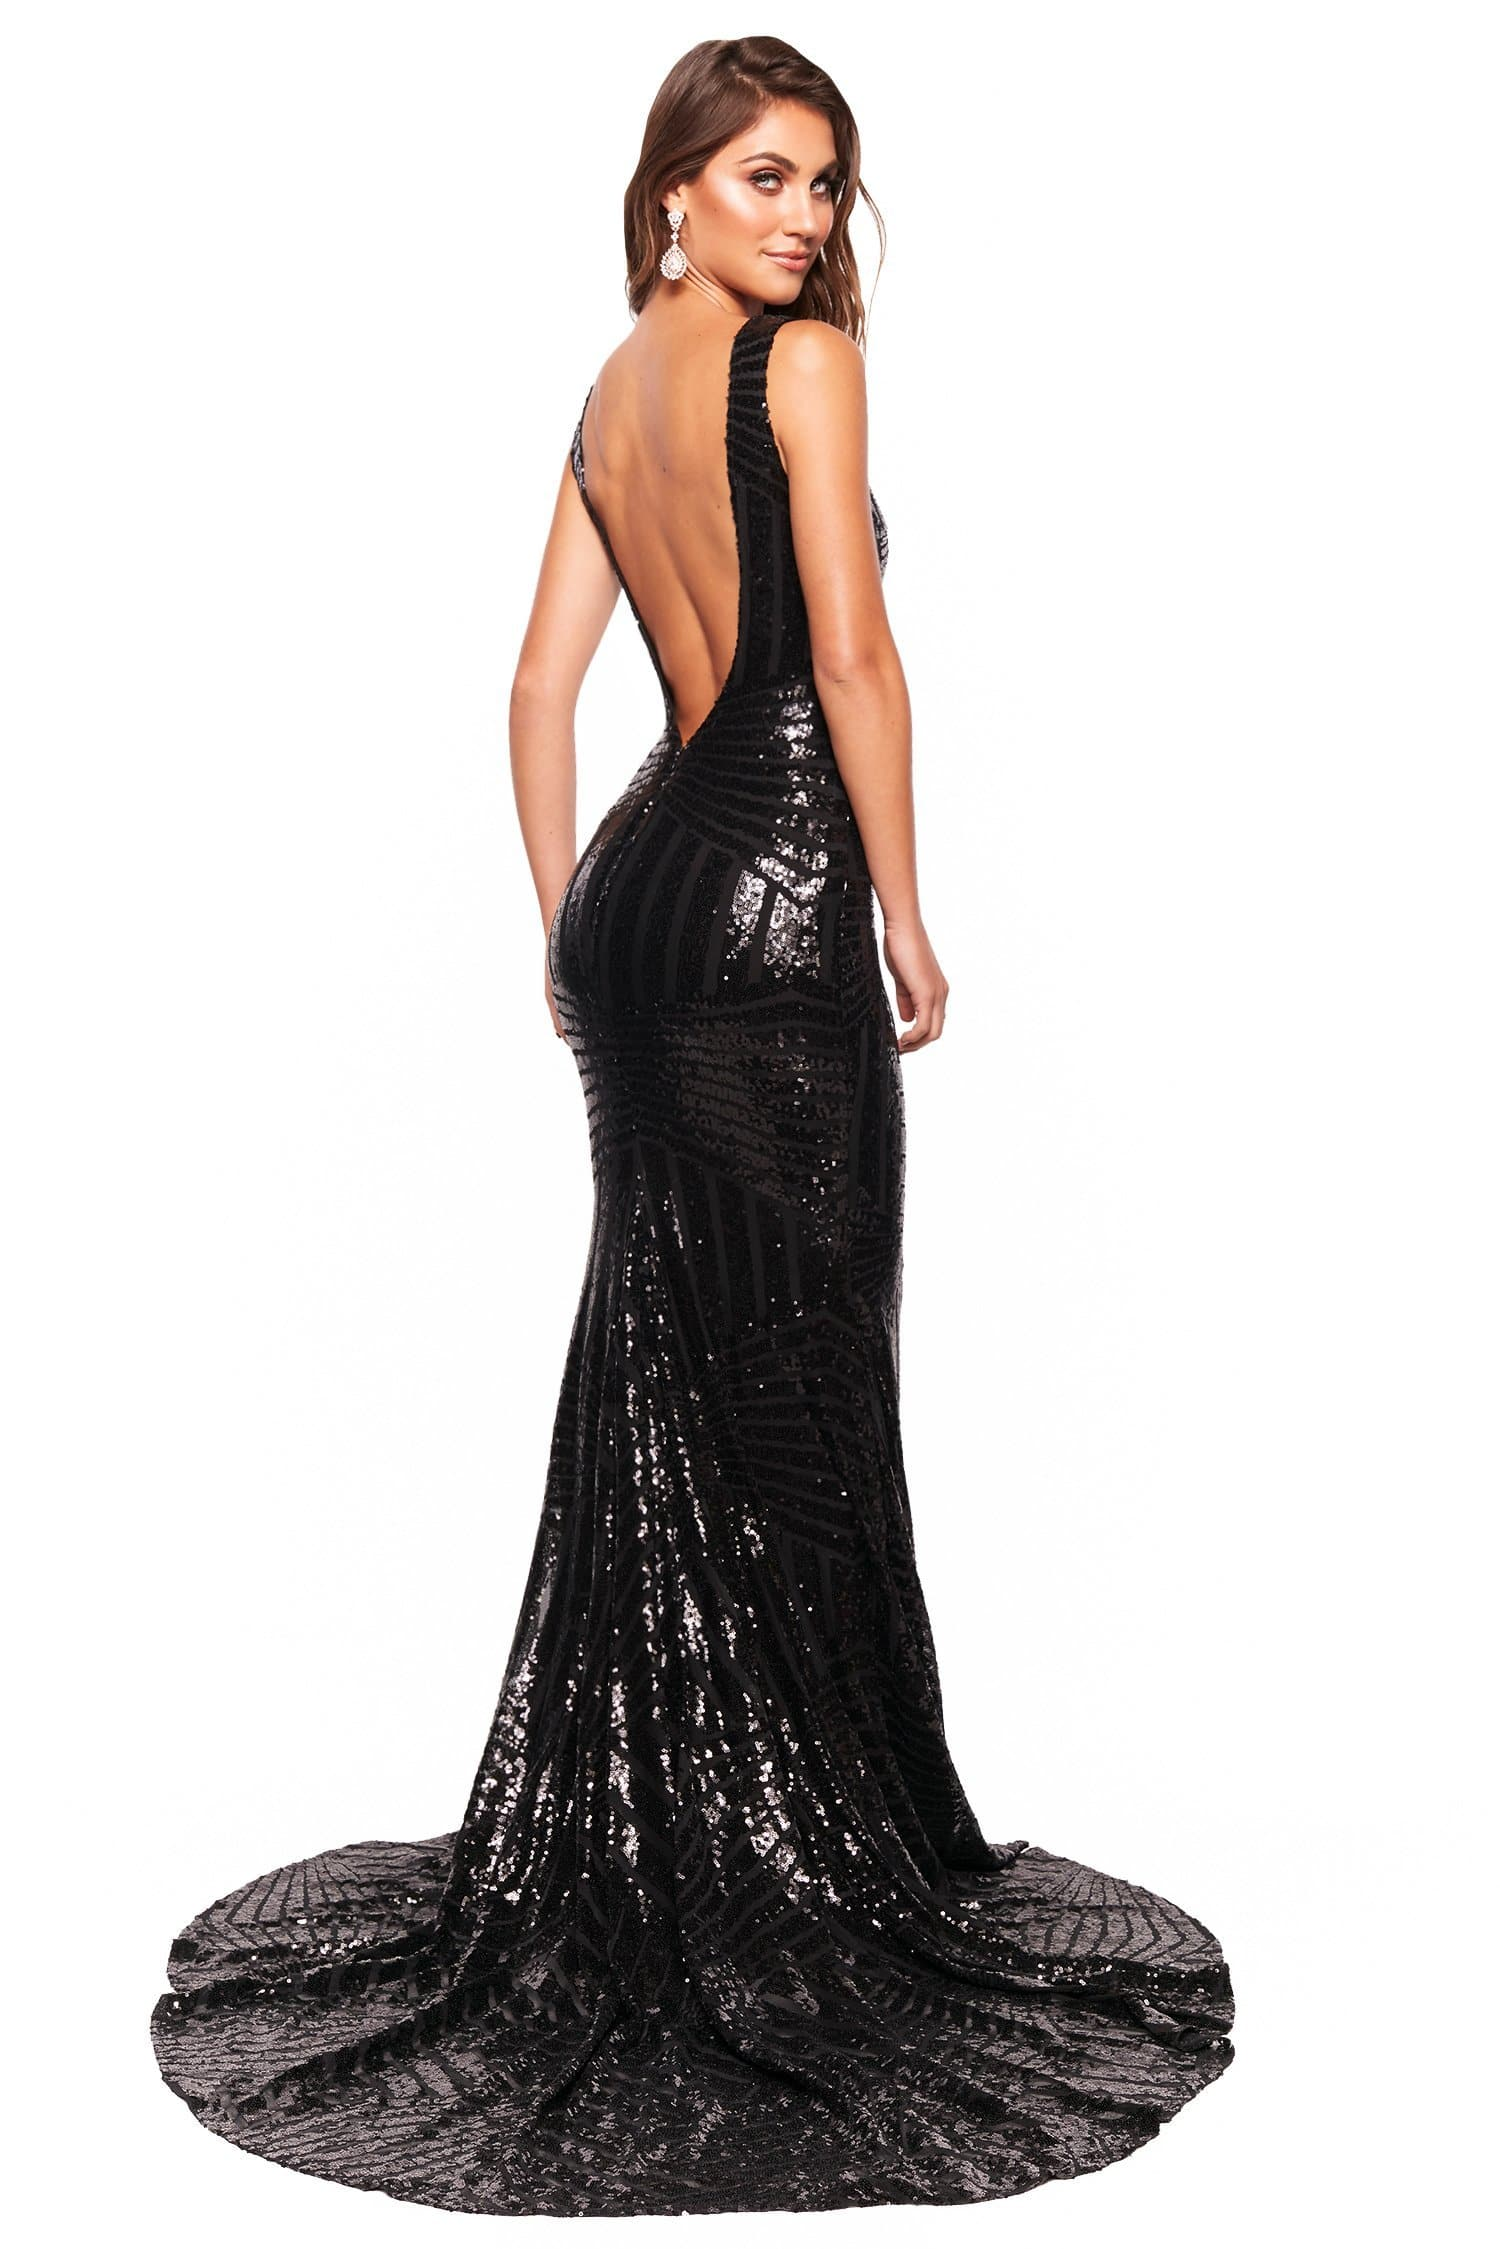 A&N Luxe Serena - Black Sequin Mermaid Gown with Plunge Neck & Low Back